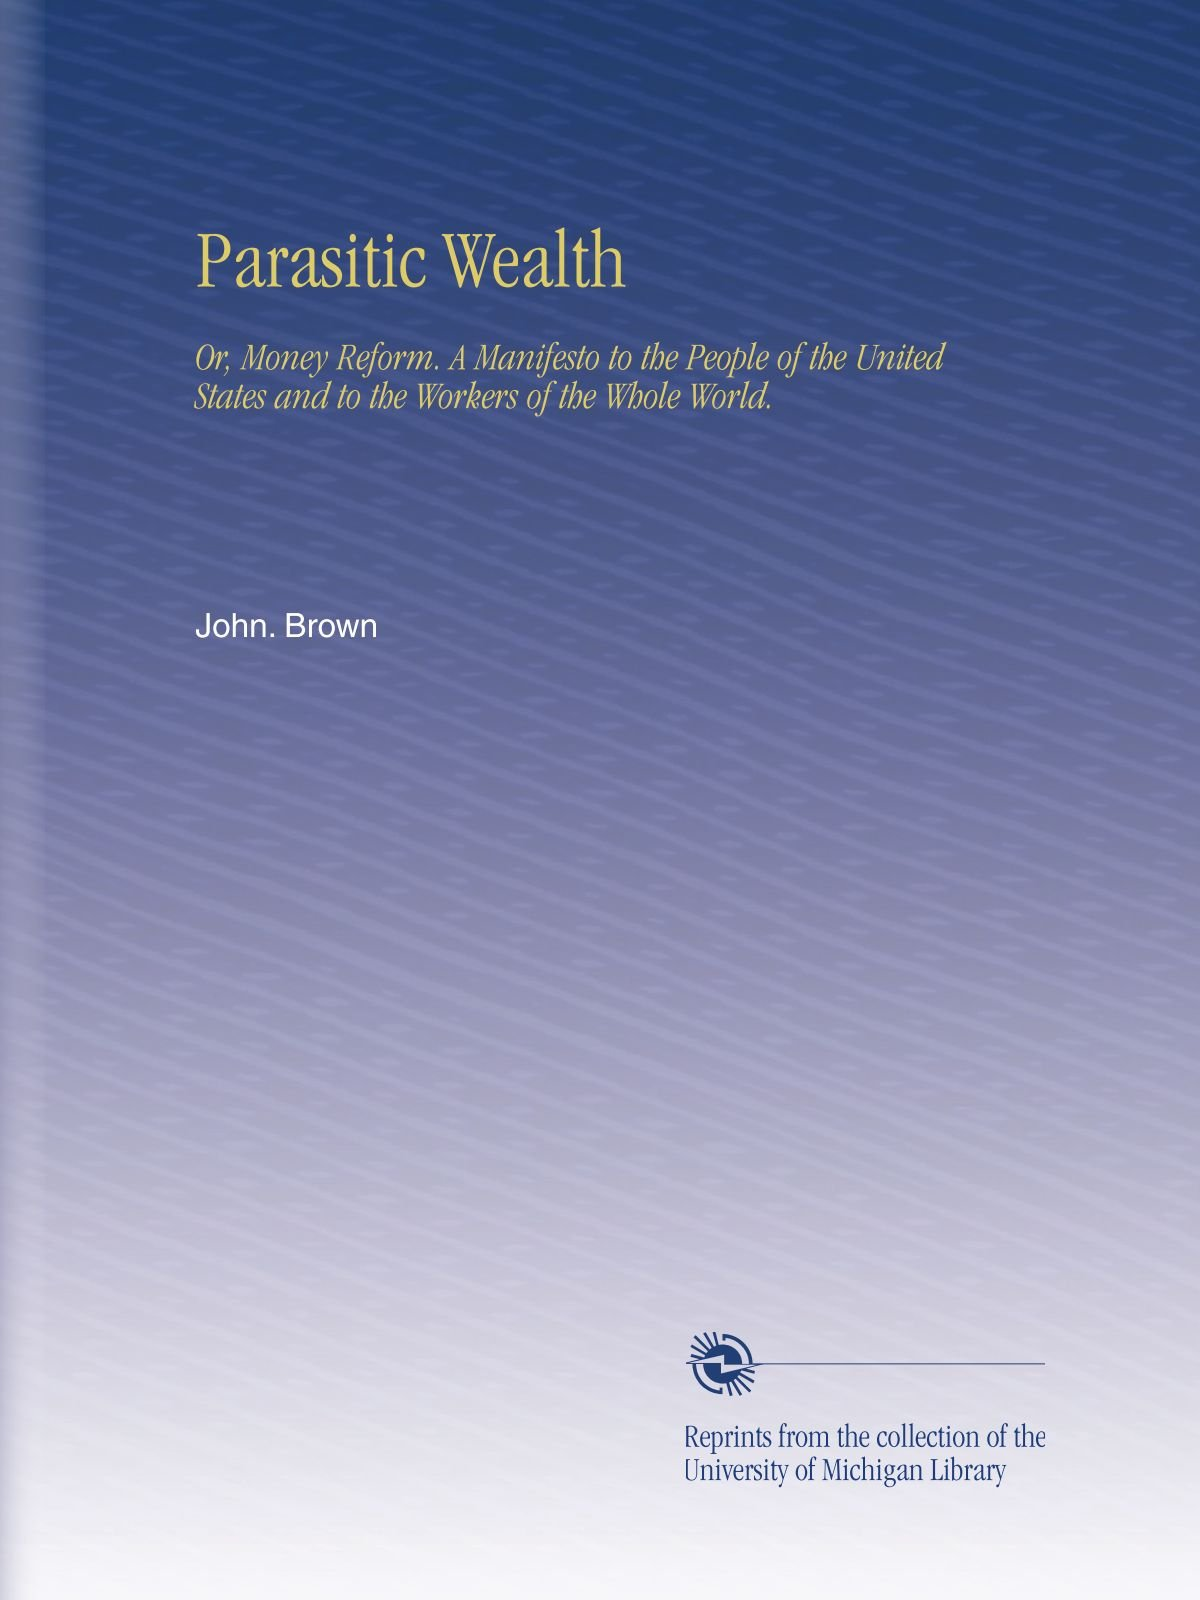 Download Parasitic Wealth: Or, Money Reform. A Manifesto to the People of the United States and to the Workers of the Whole World. PDF